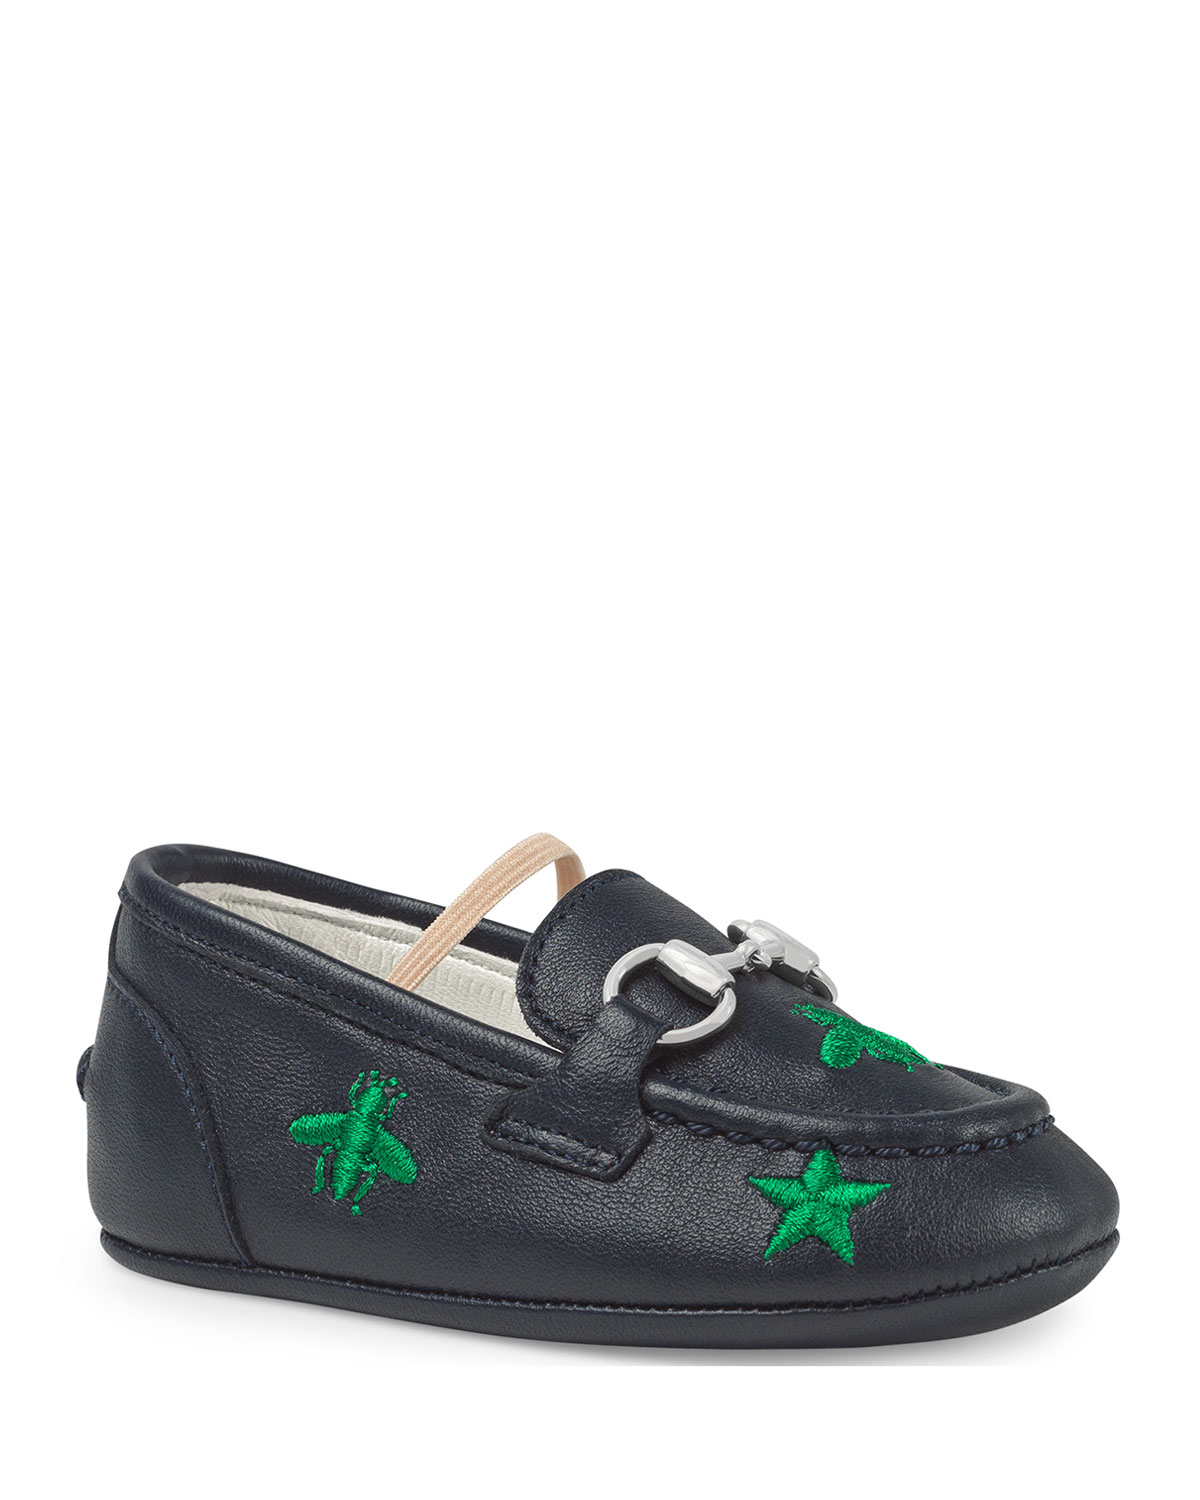 23b8debe69e Gucci Jordan Bee   Star Embroidered Leather Loafers